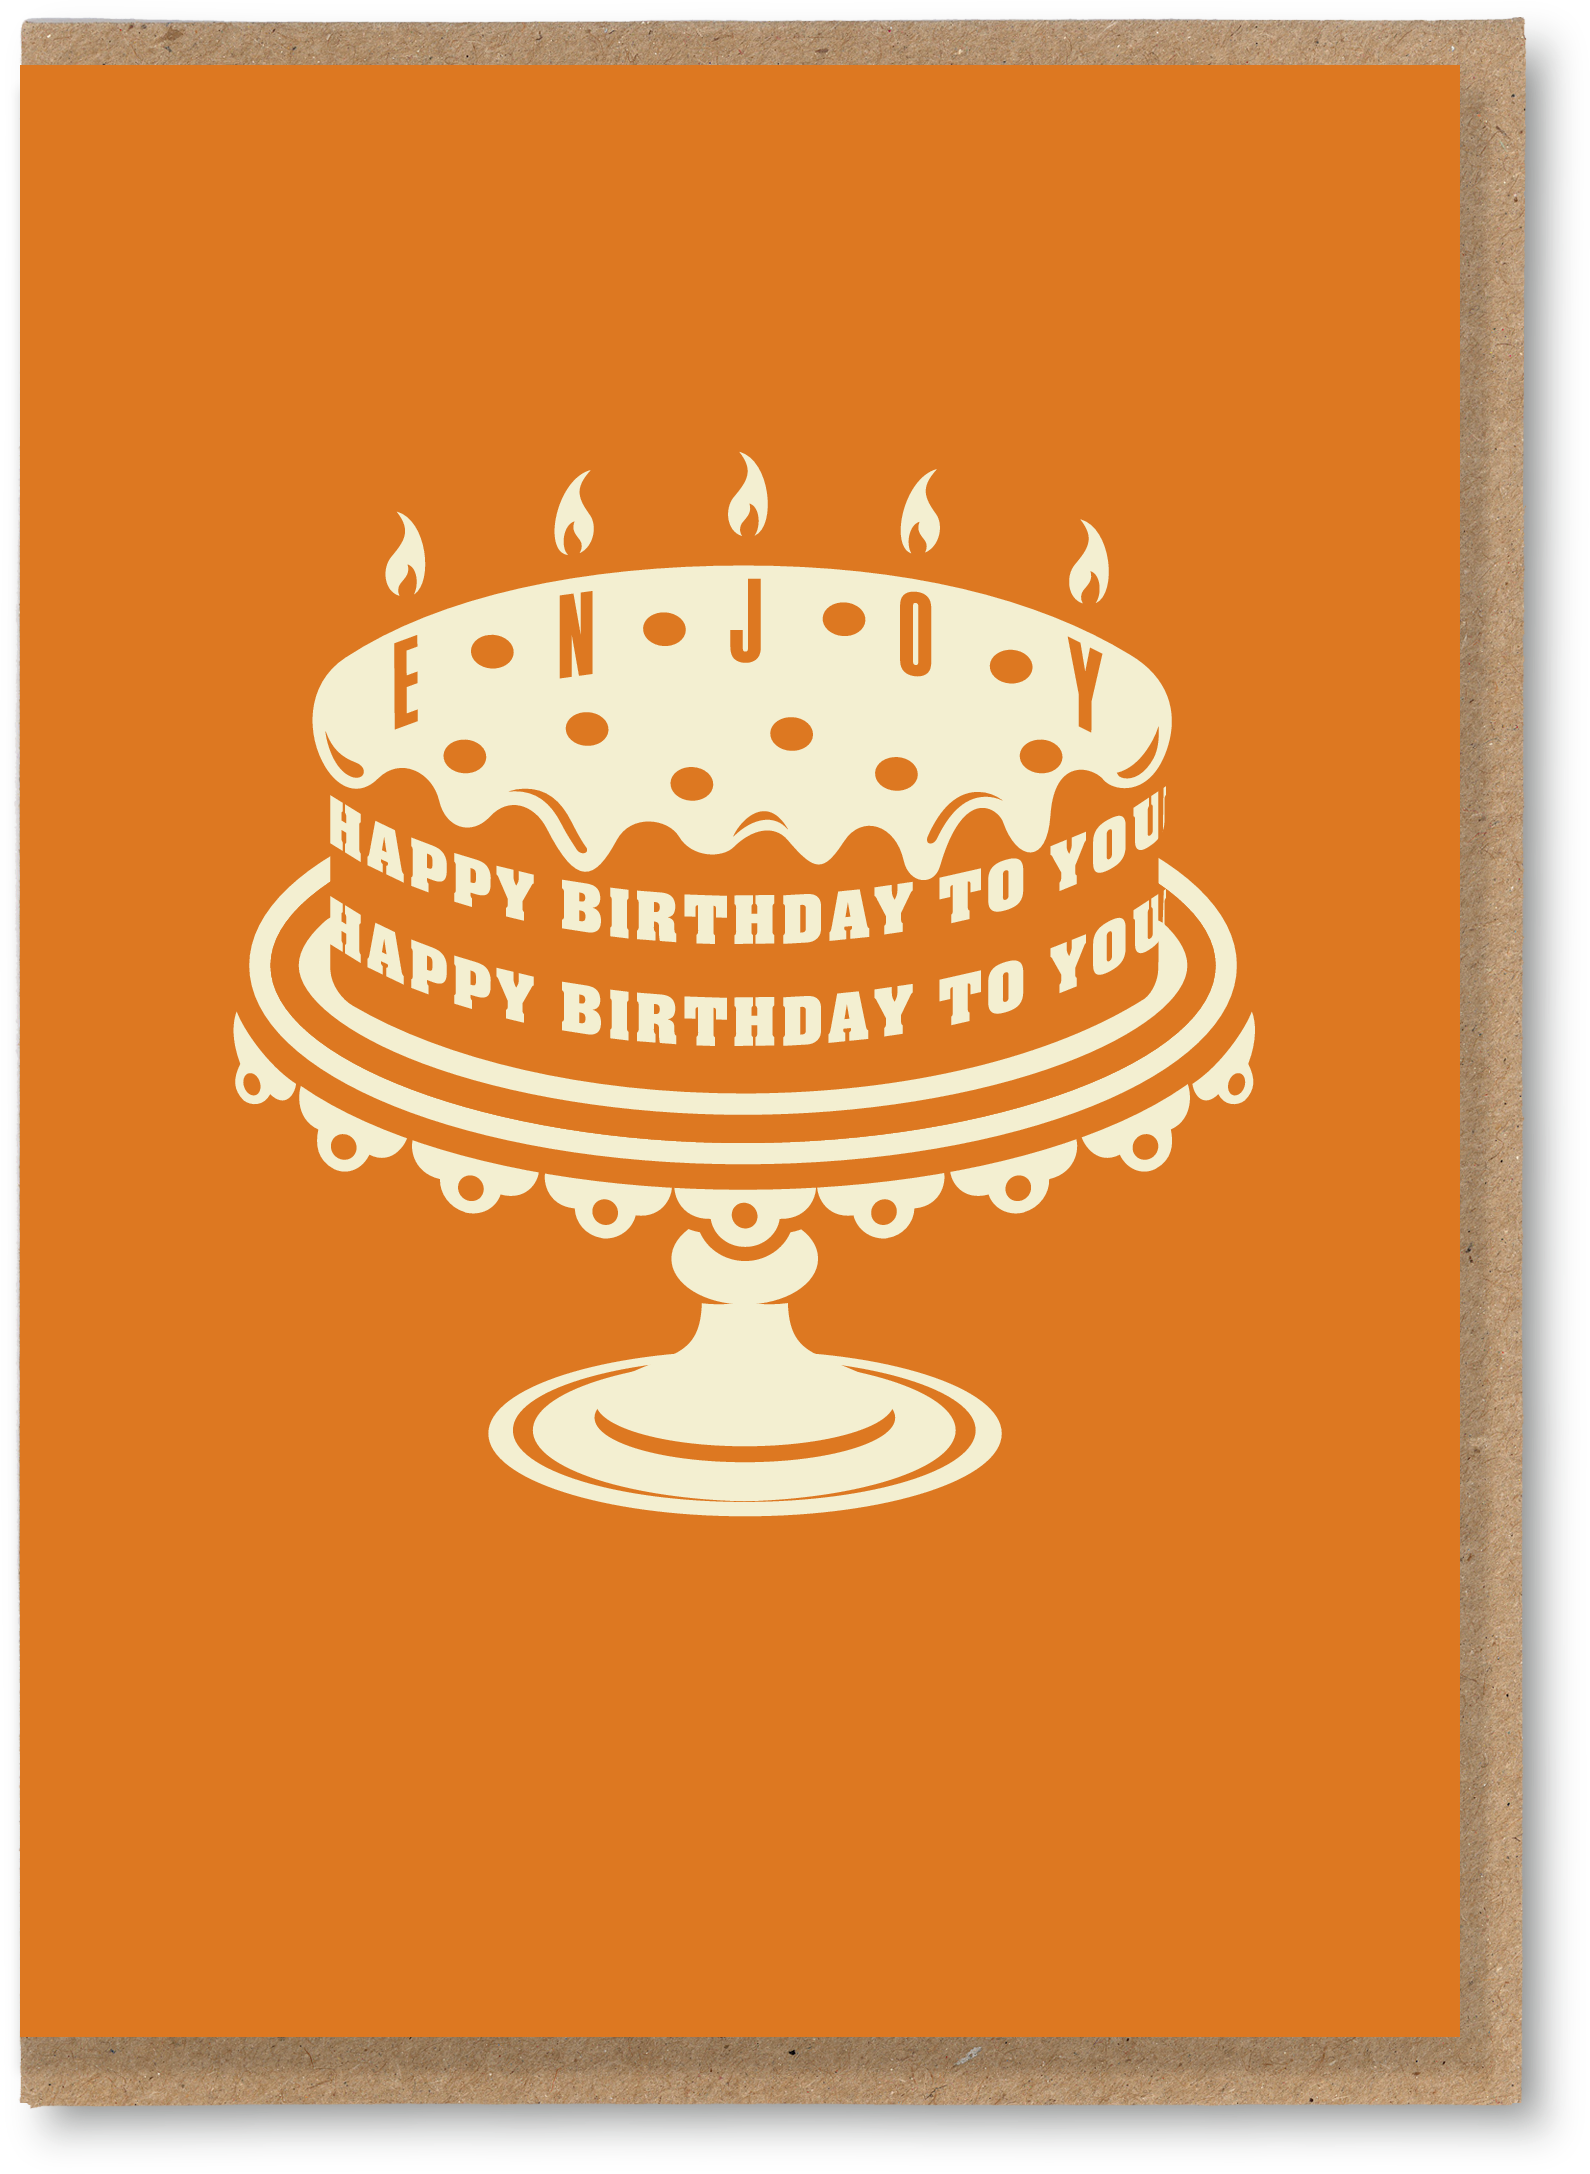 Astounding Birthday Cake Jmt 24 Greetings Cards And Art Prints The Personalised Birthday Cards Veneteletsinfo